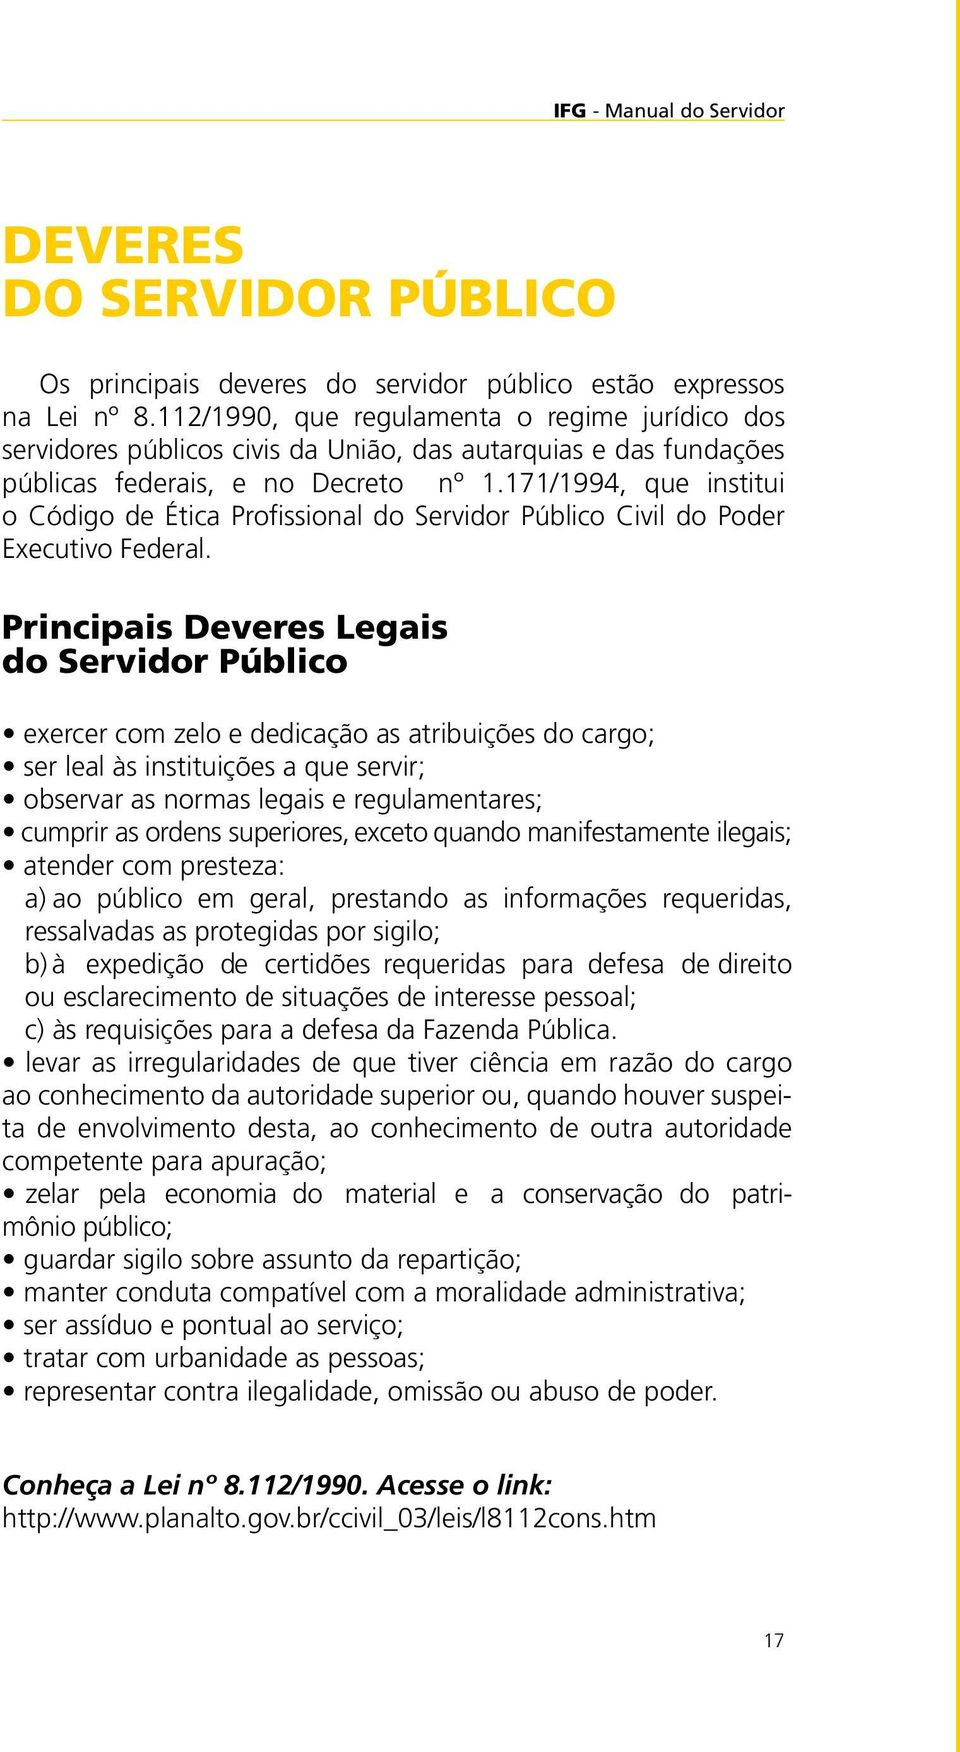 171/1994, que institui o Código de Ética Profissional do Servidor Público Civil do Poder Executivo Federal.